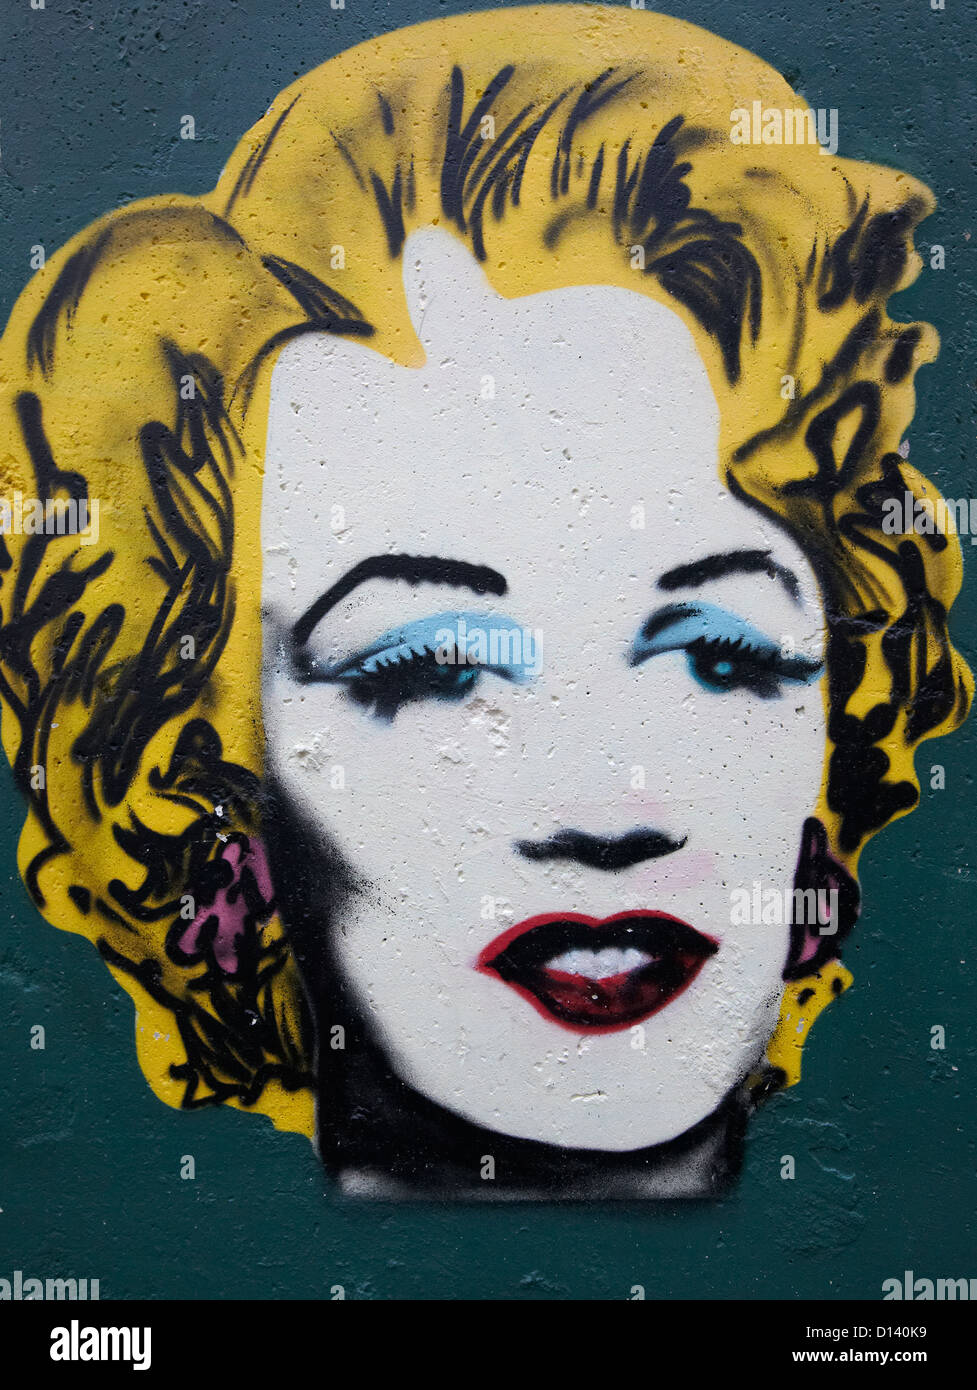 Marilyn Monroe Graffiti On the Berlin Wall Berlin Germany - Stock Image